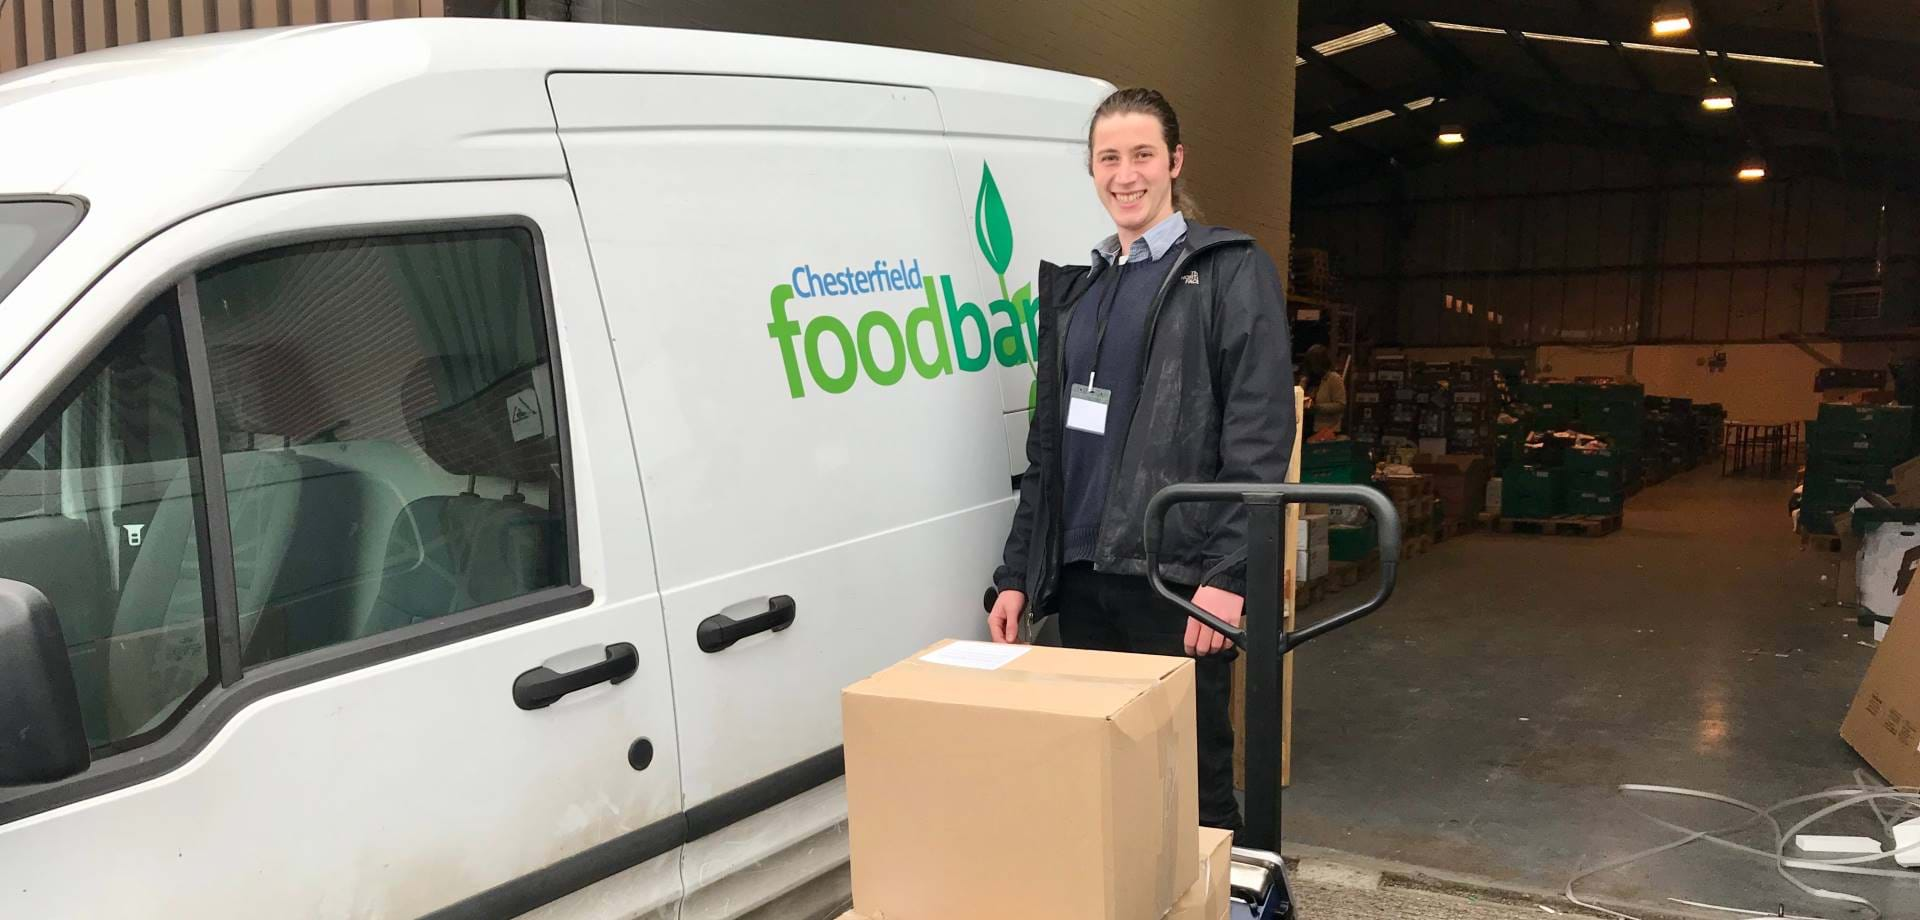 Supporting local foodbanks